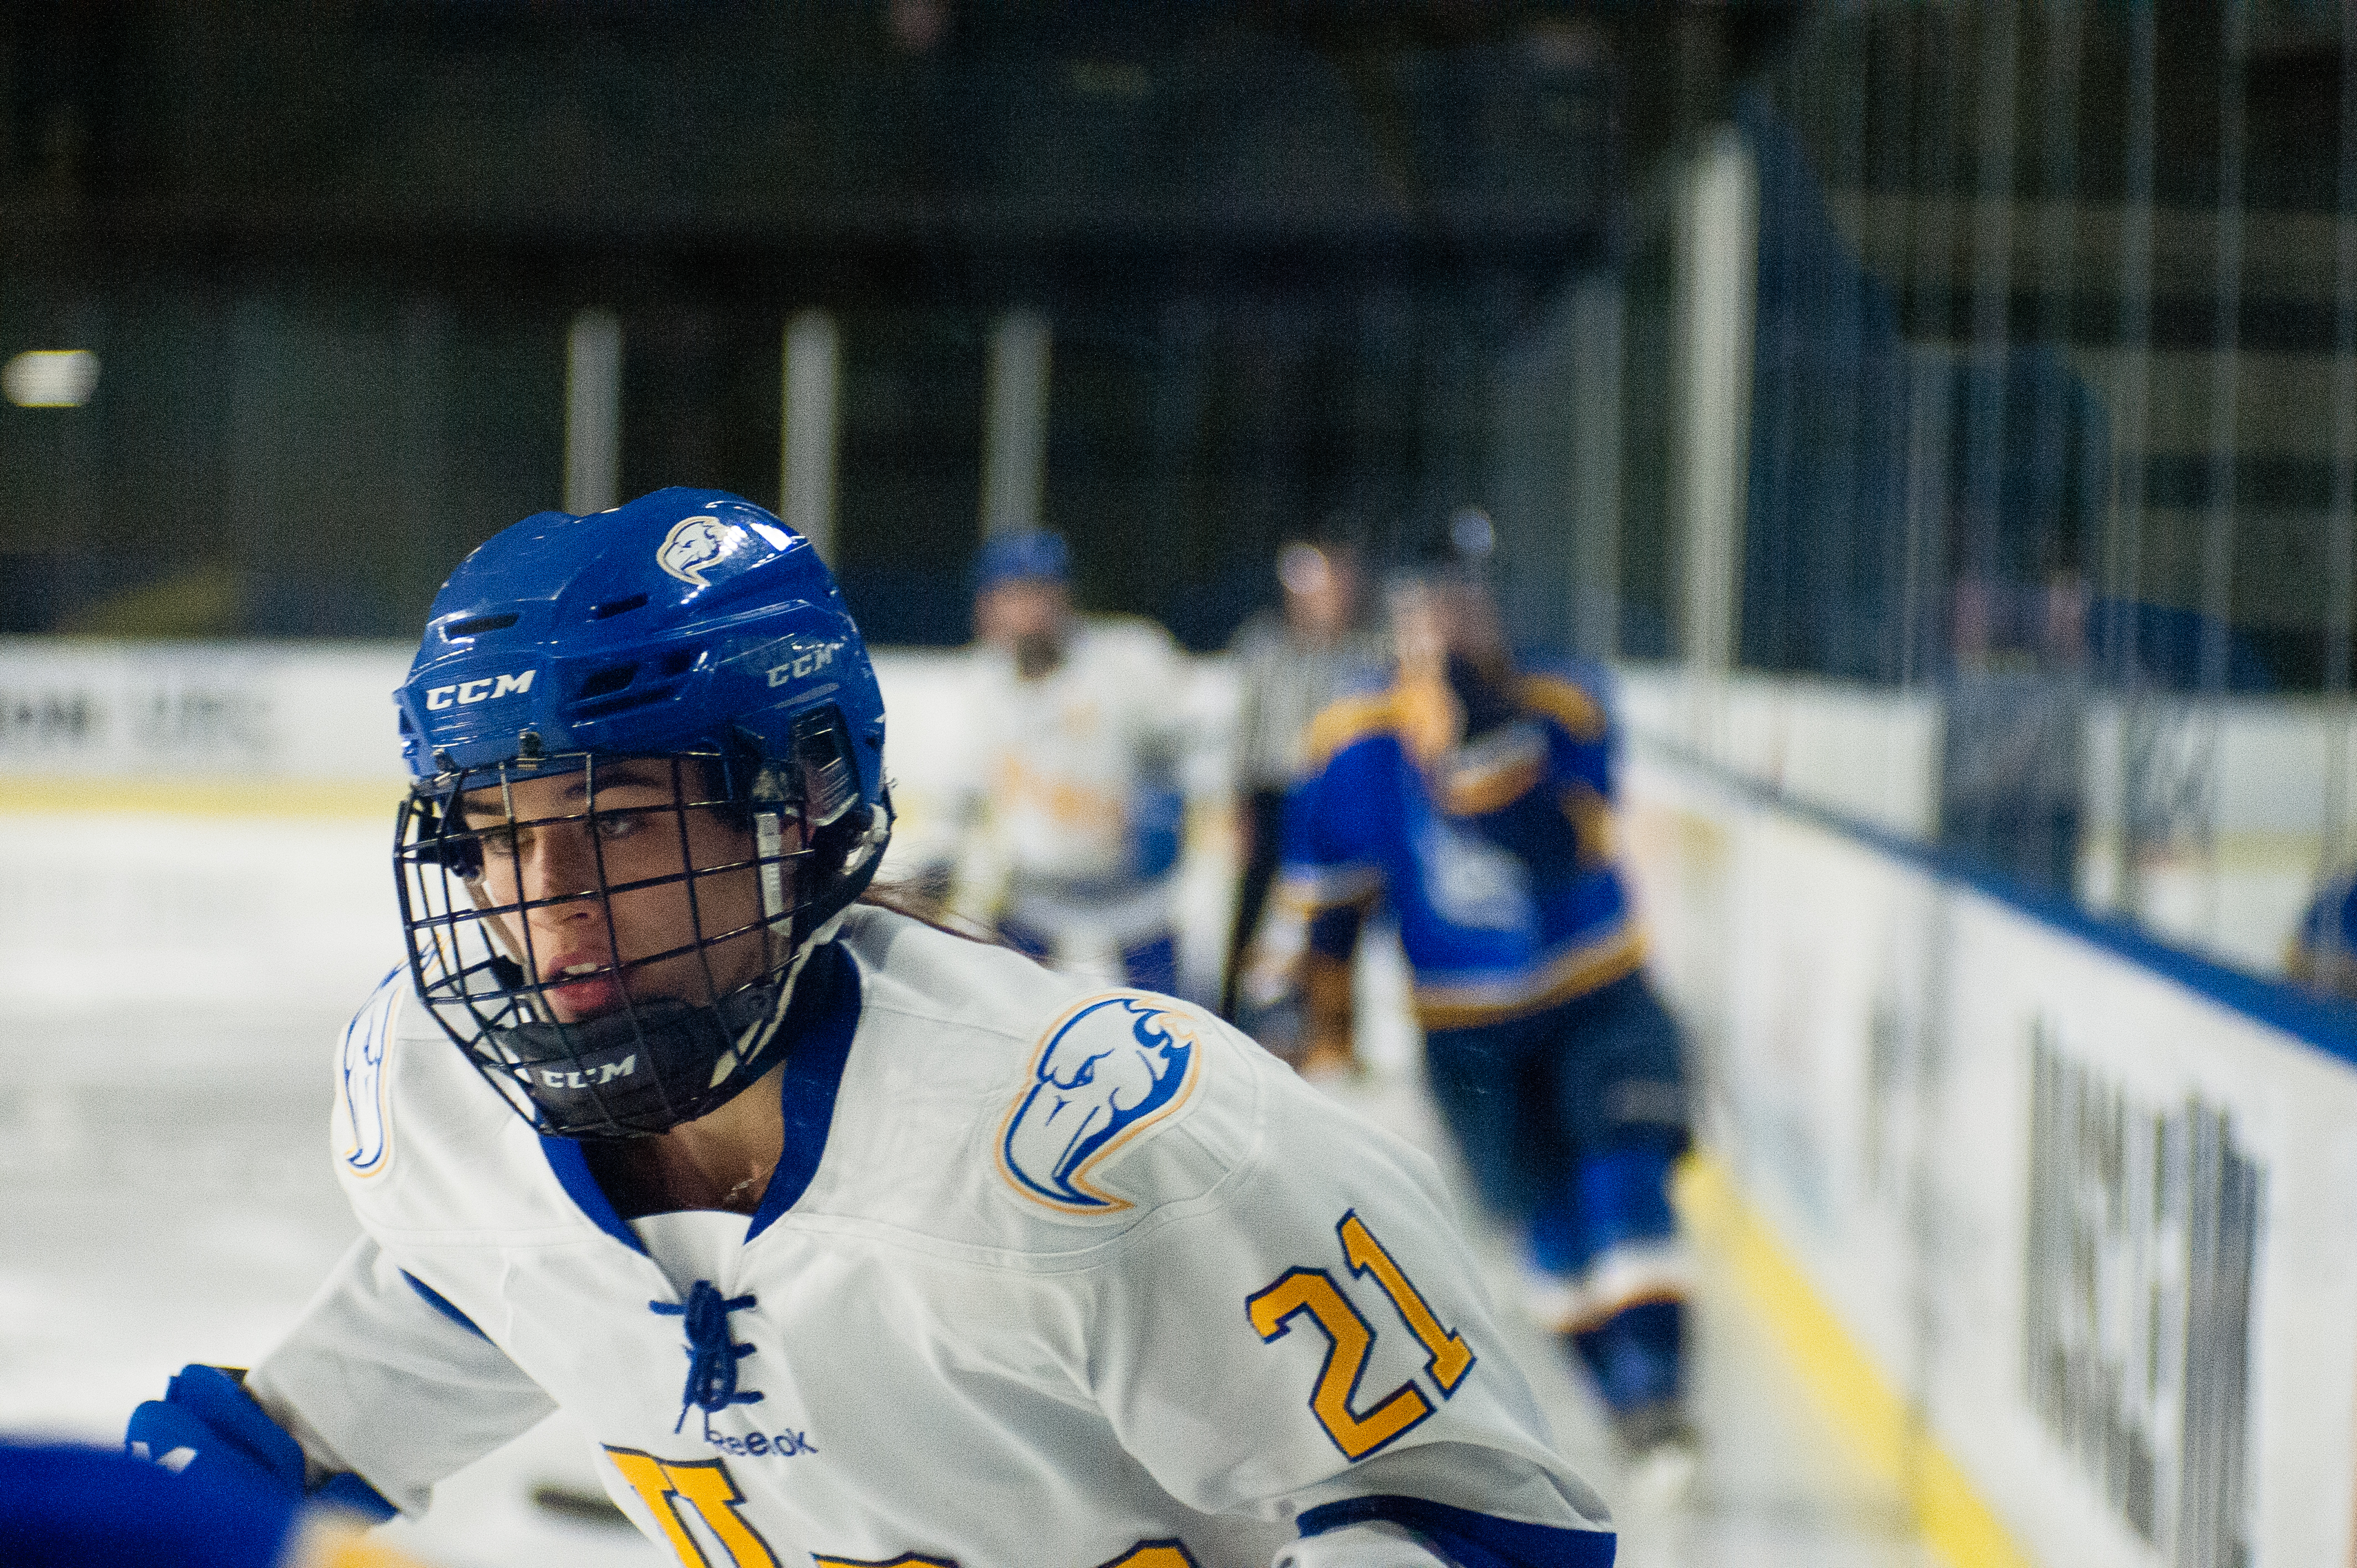 Fifth-year Logan Boyd provided two assists over the weekend for women's hockey.